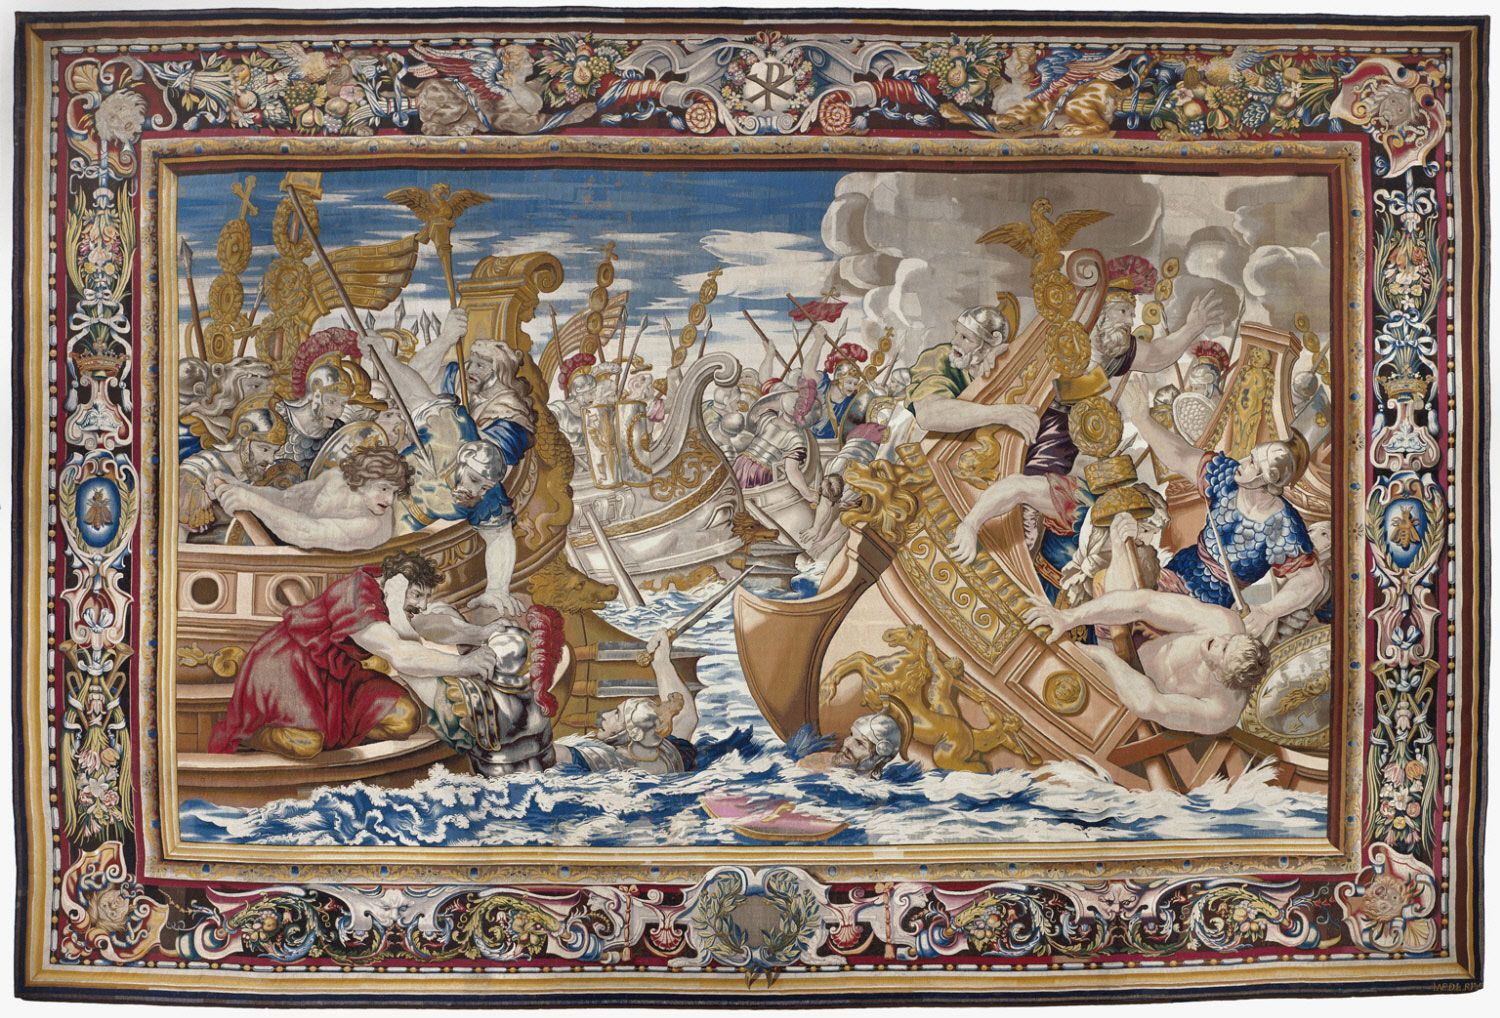 Tapestry_showing_the_Sea_Battle_between_the_Fleets_of_Constantine_and_Licinius-cropped.jpg